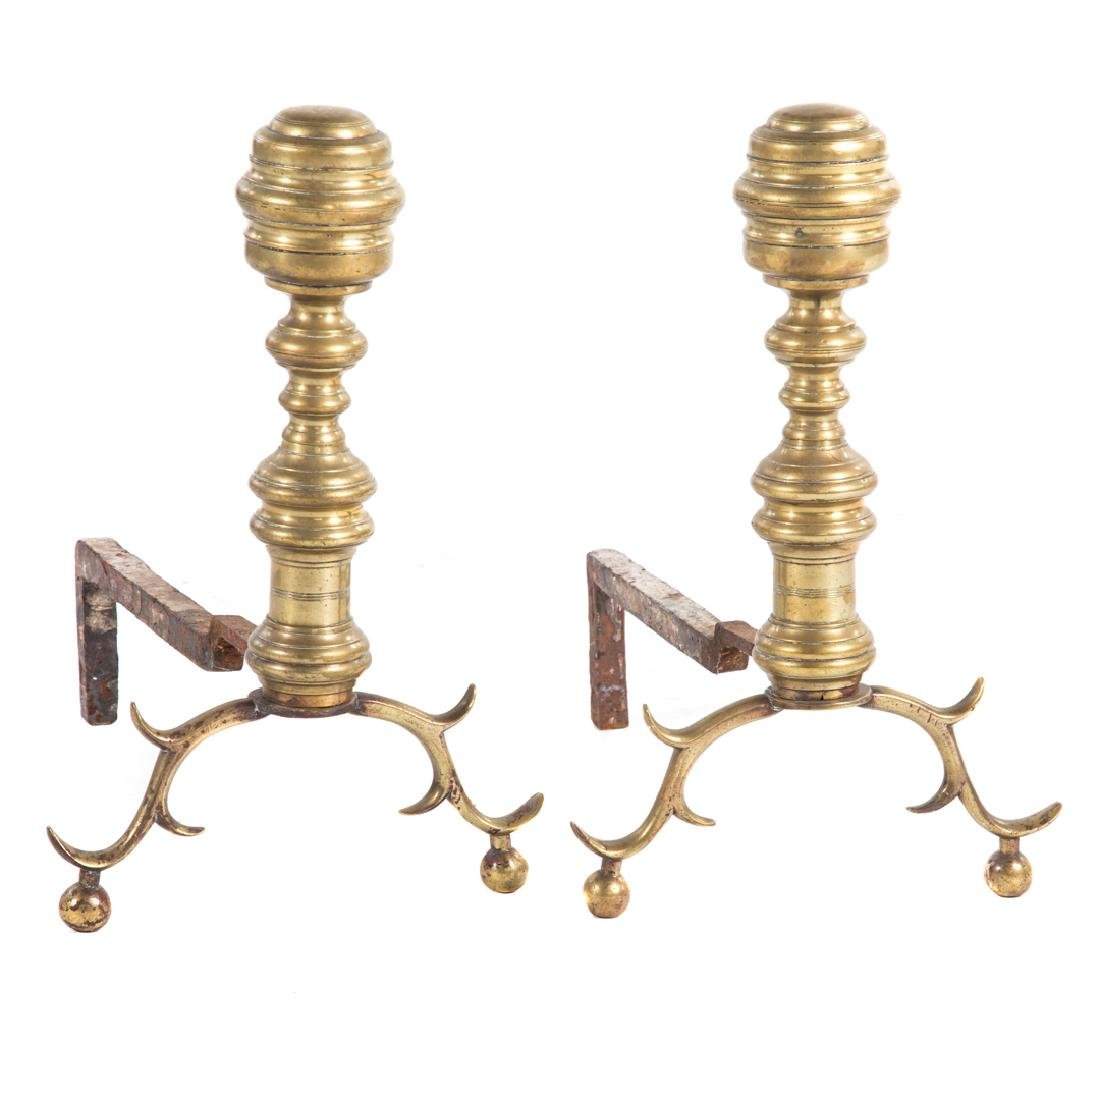 Pair of late federal brass andirons